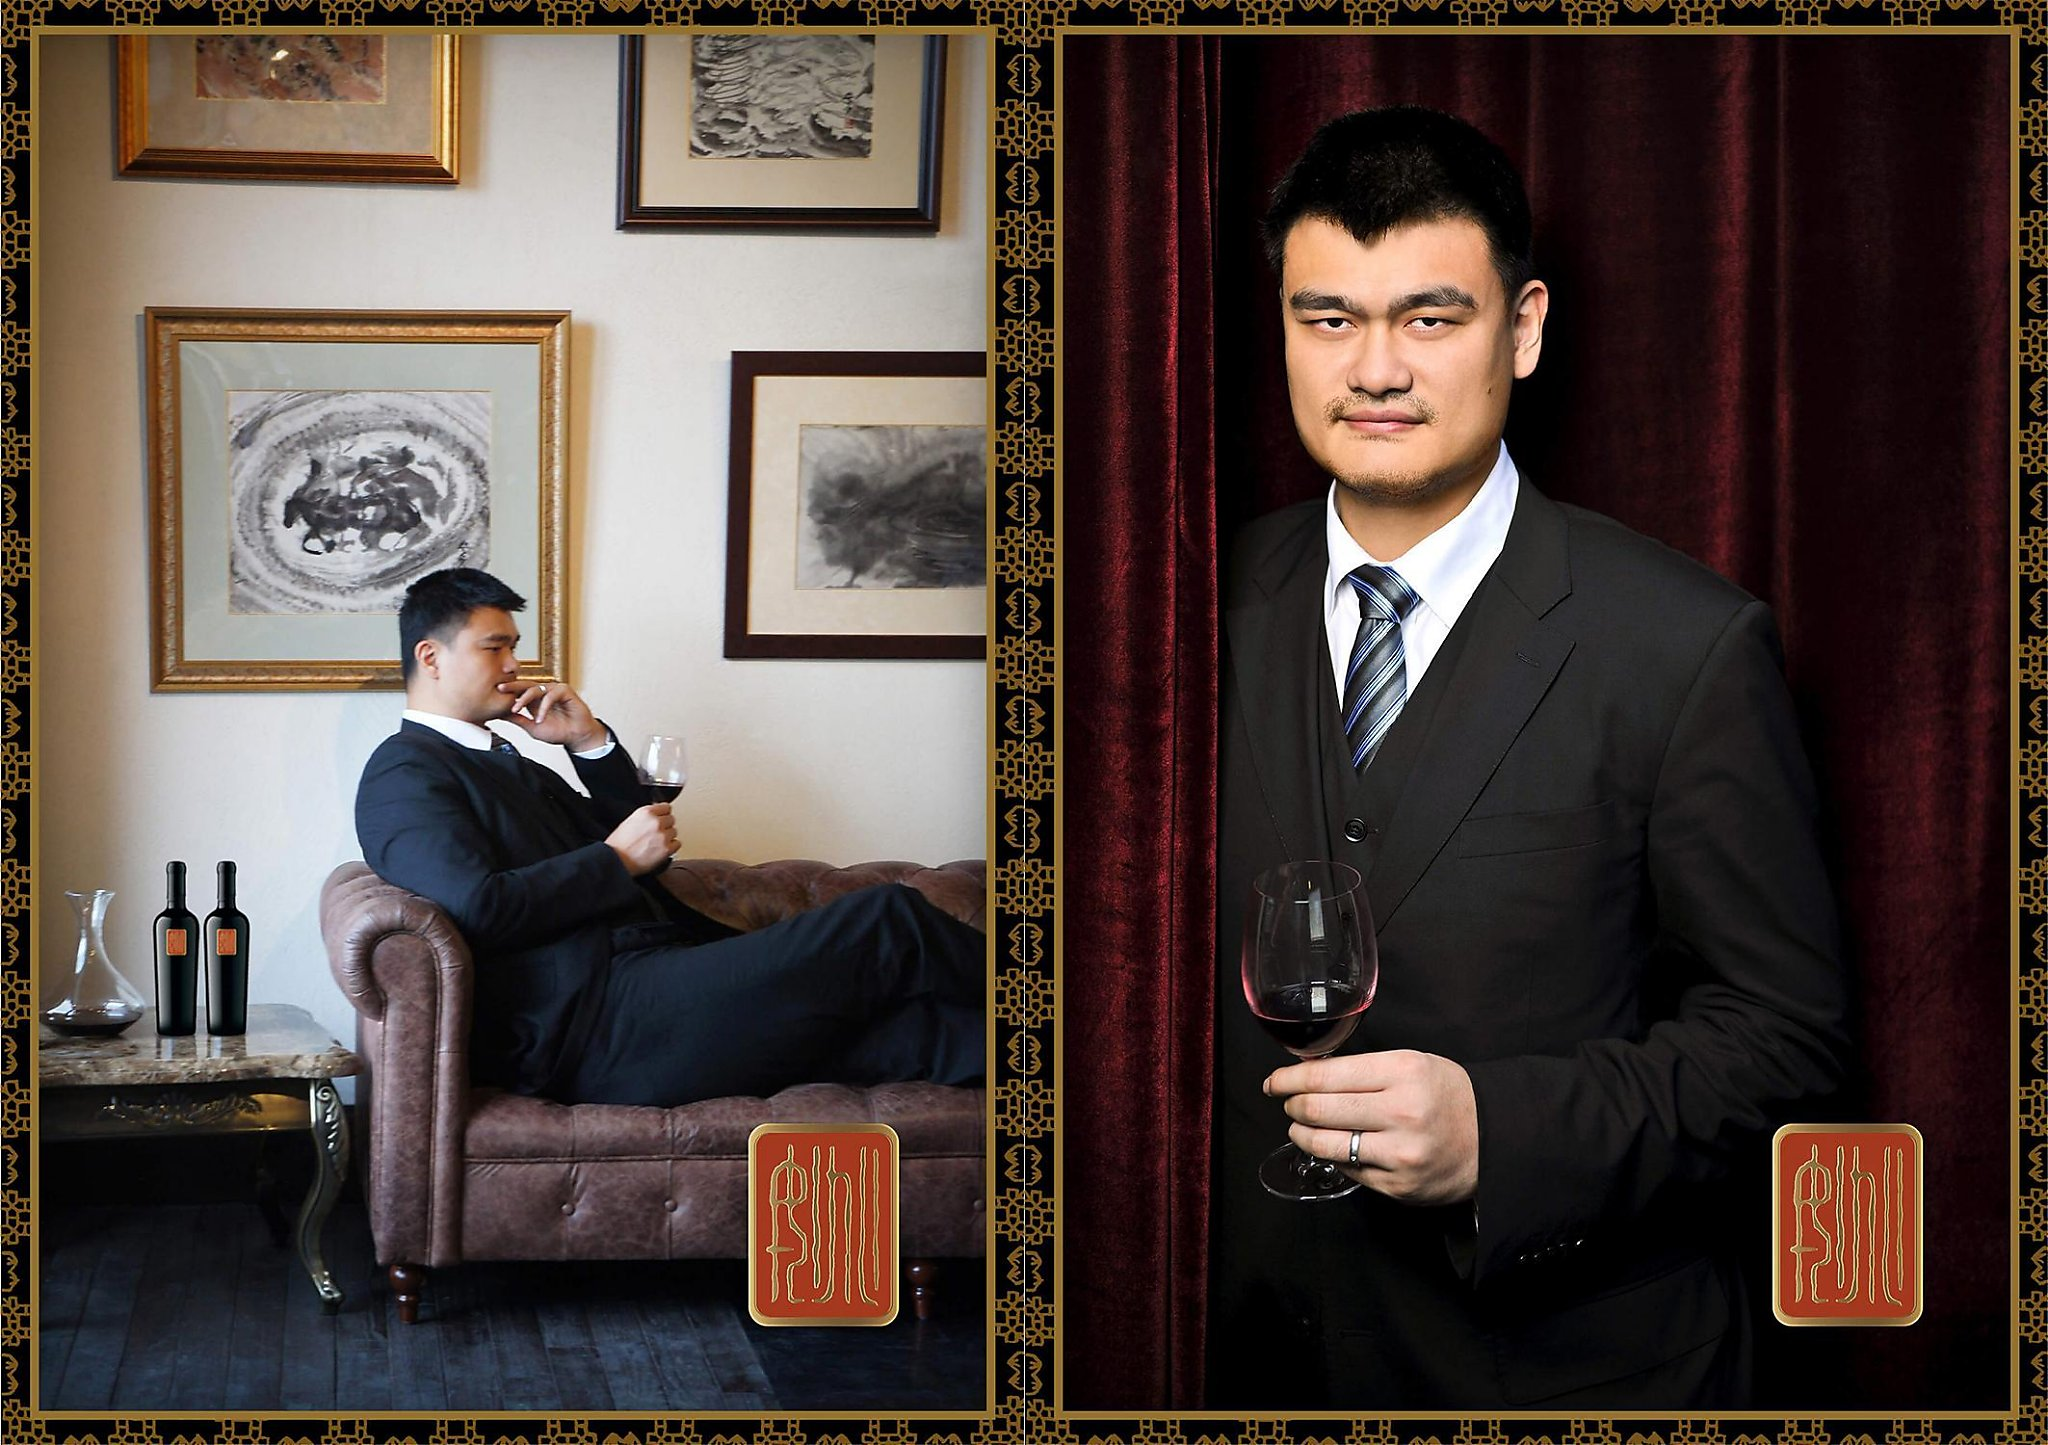 www.sfchronicle.com: Yao Ming's Napa winery is trying to cash in on the NFT 'gold rush'